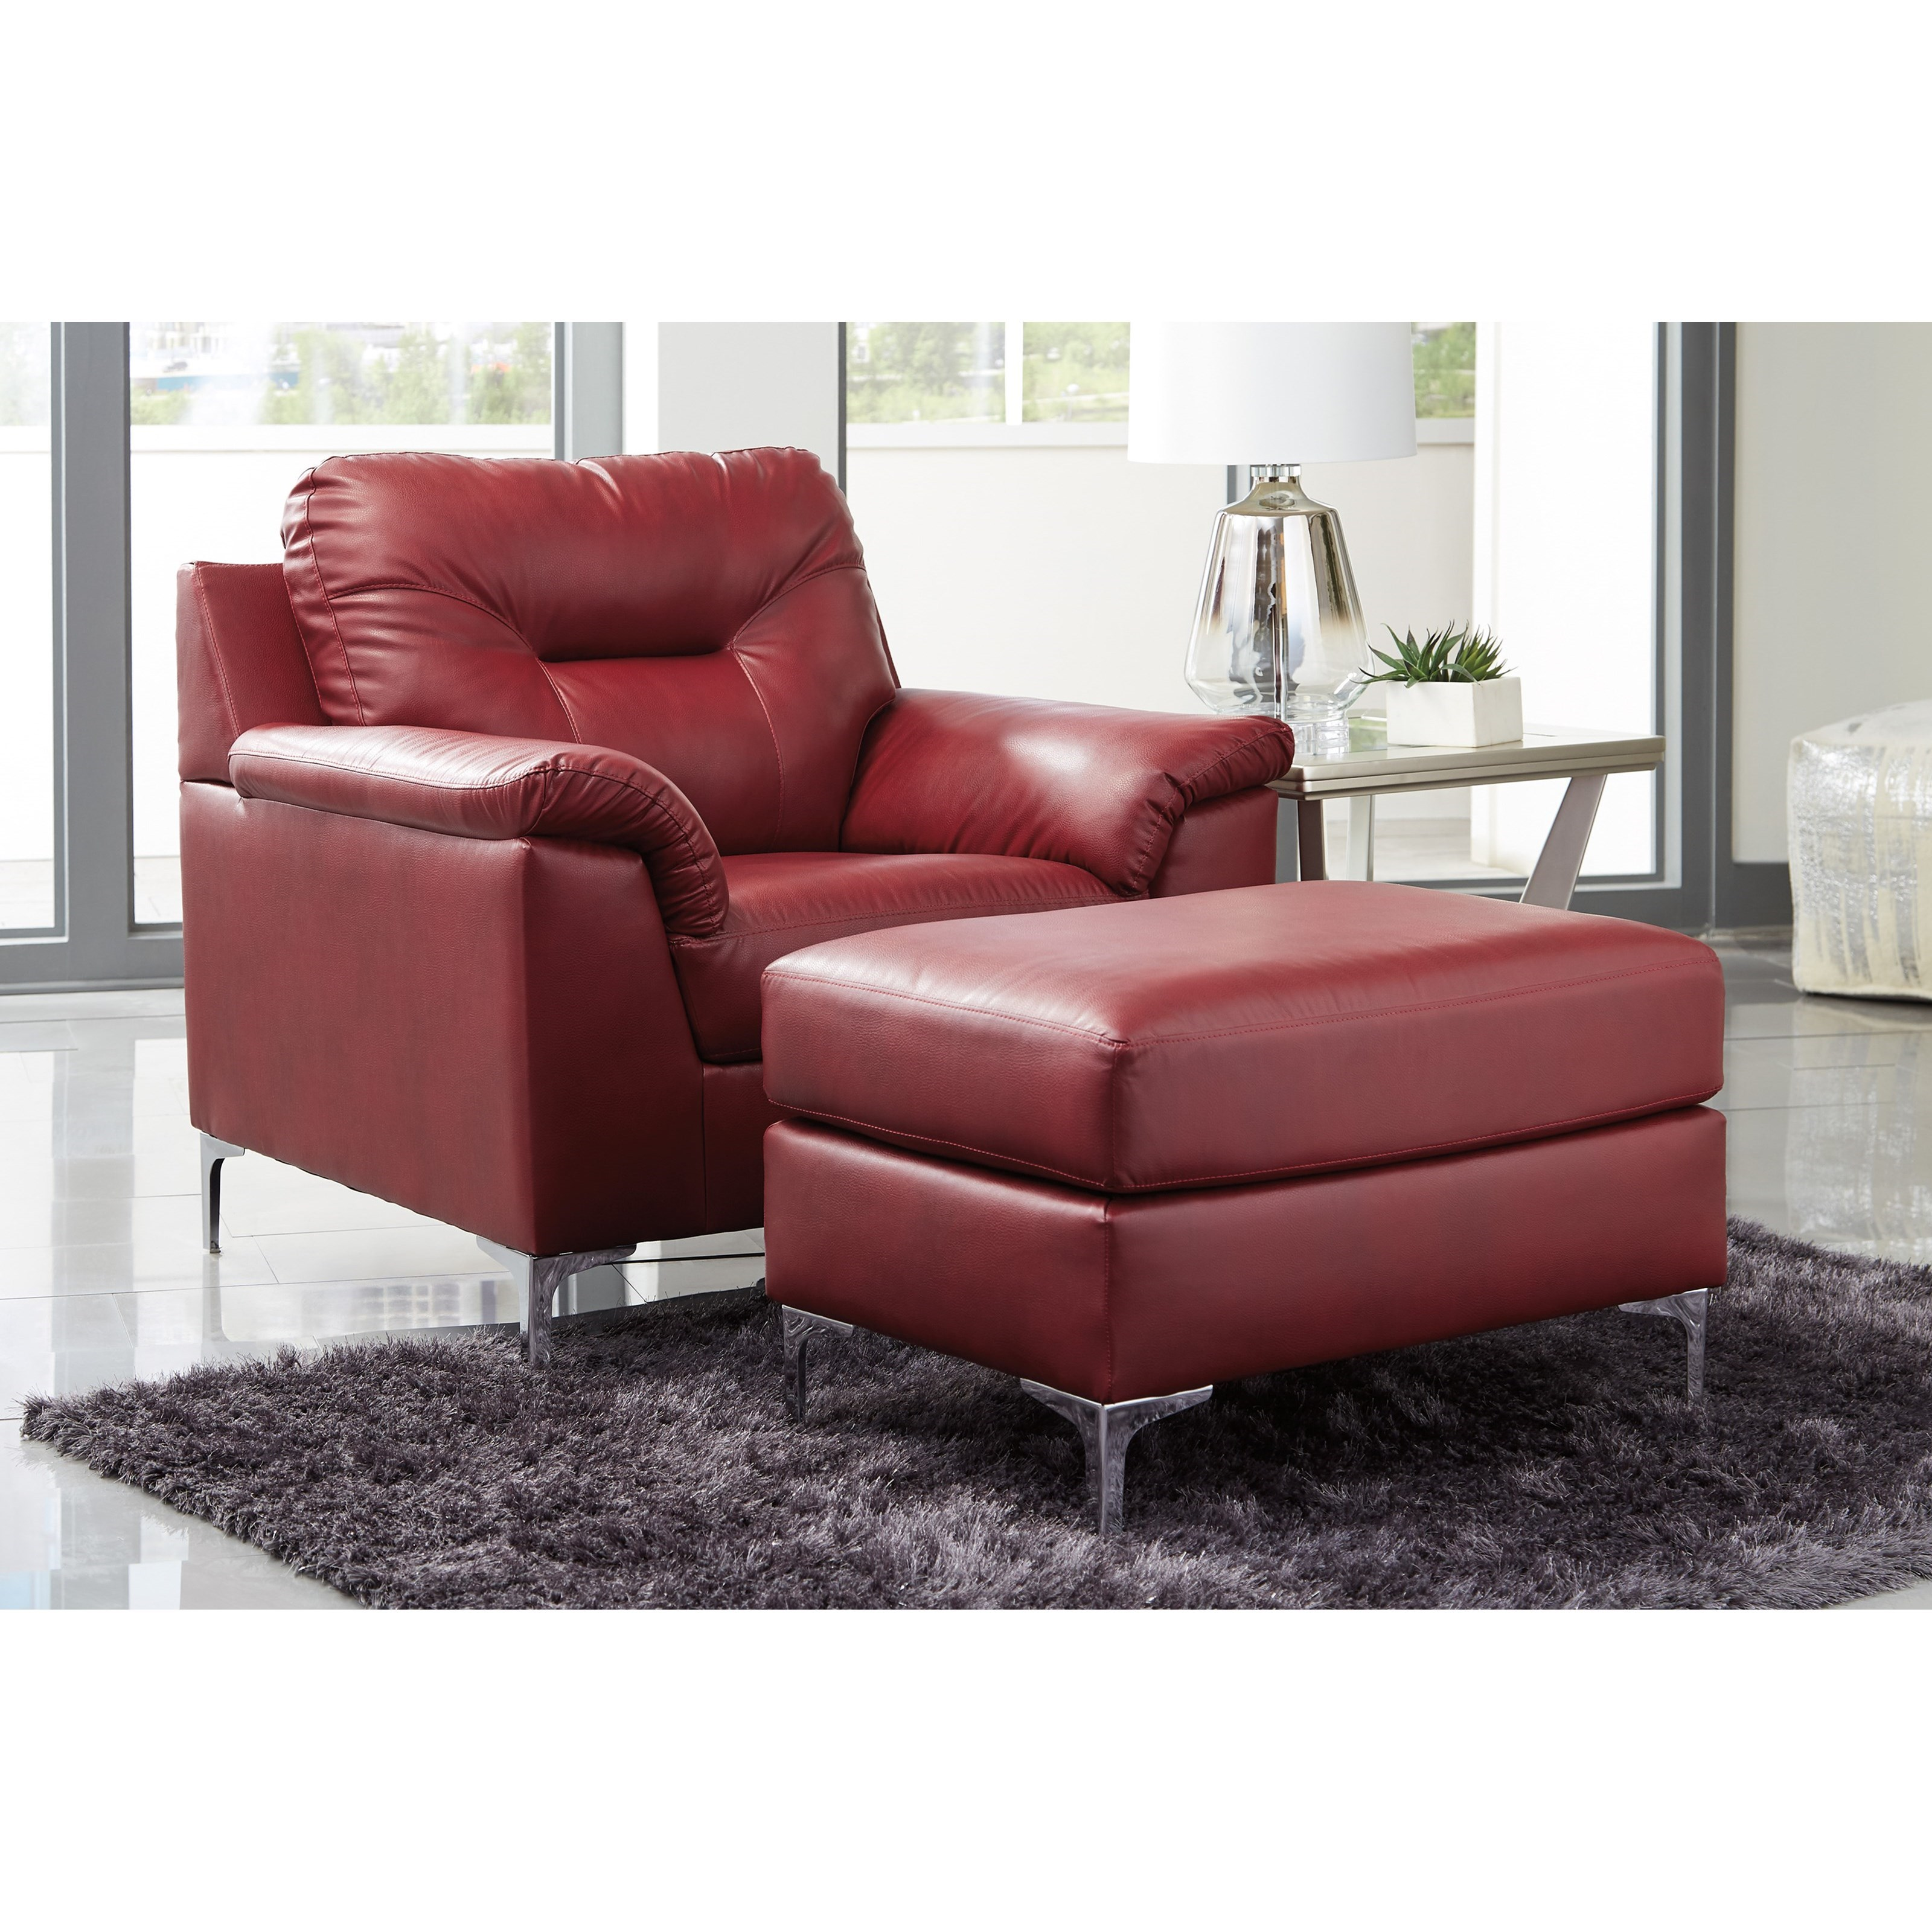 Contemporary Living Room Chair: Signature Design By Ashley Tensas Contemporary Chair And